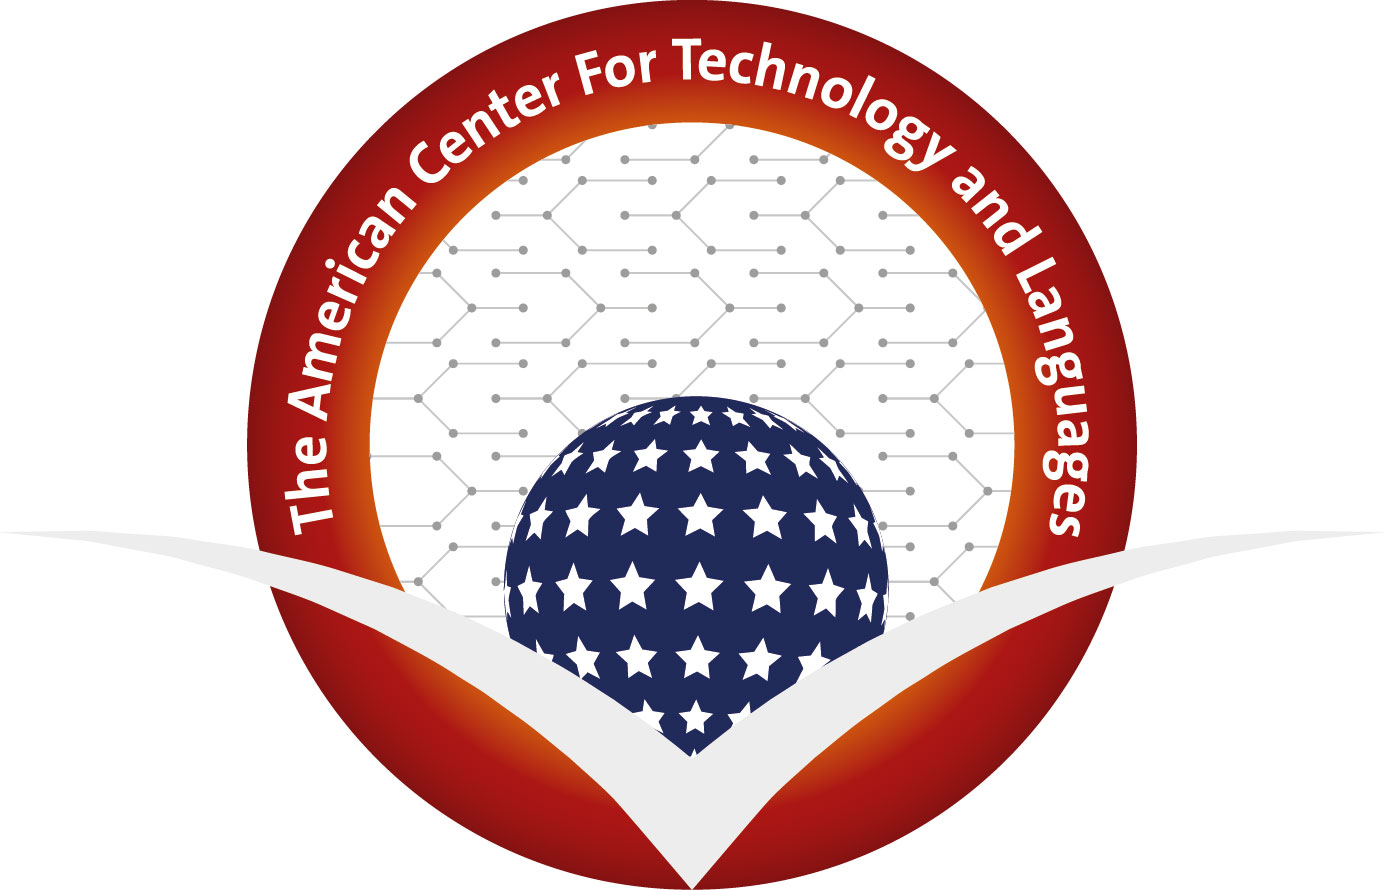 More about The American Center for Technology and Languages